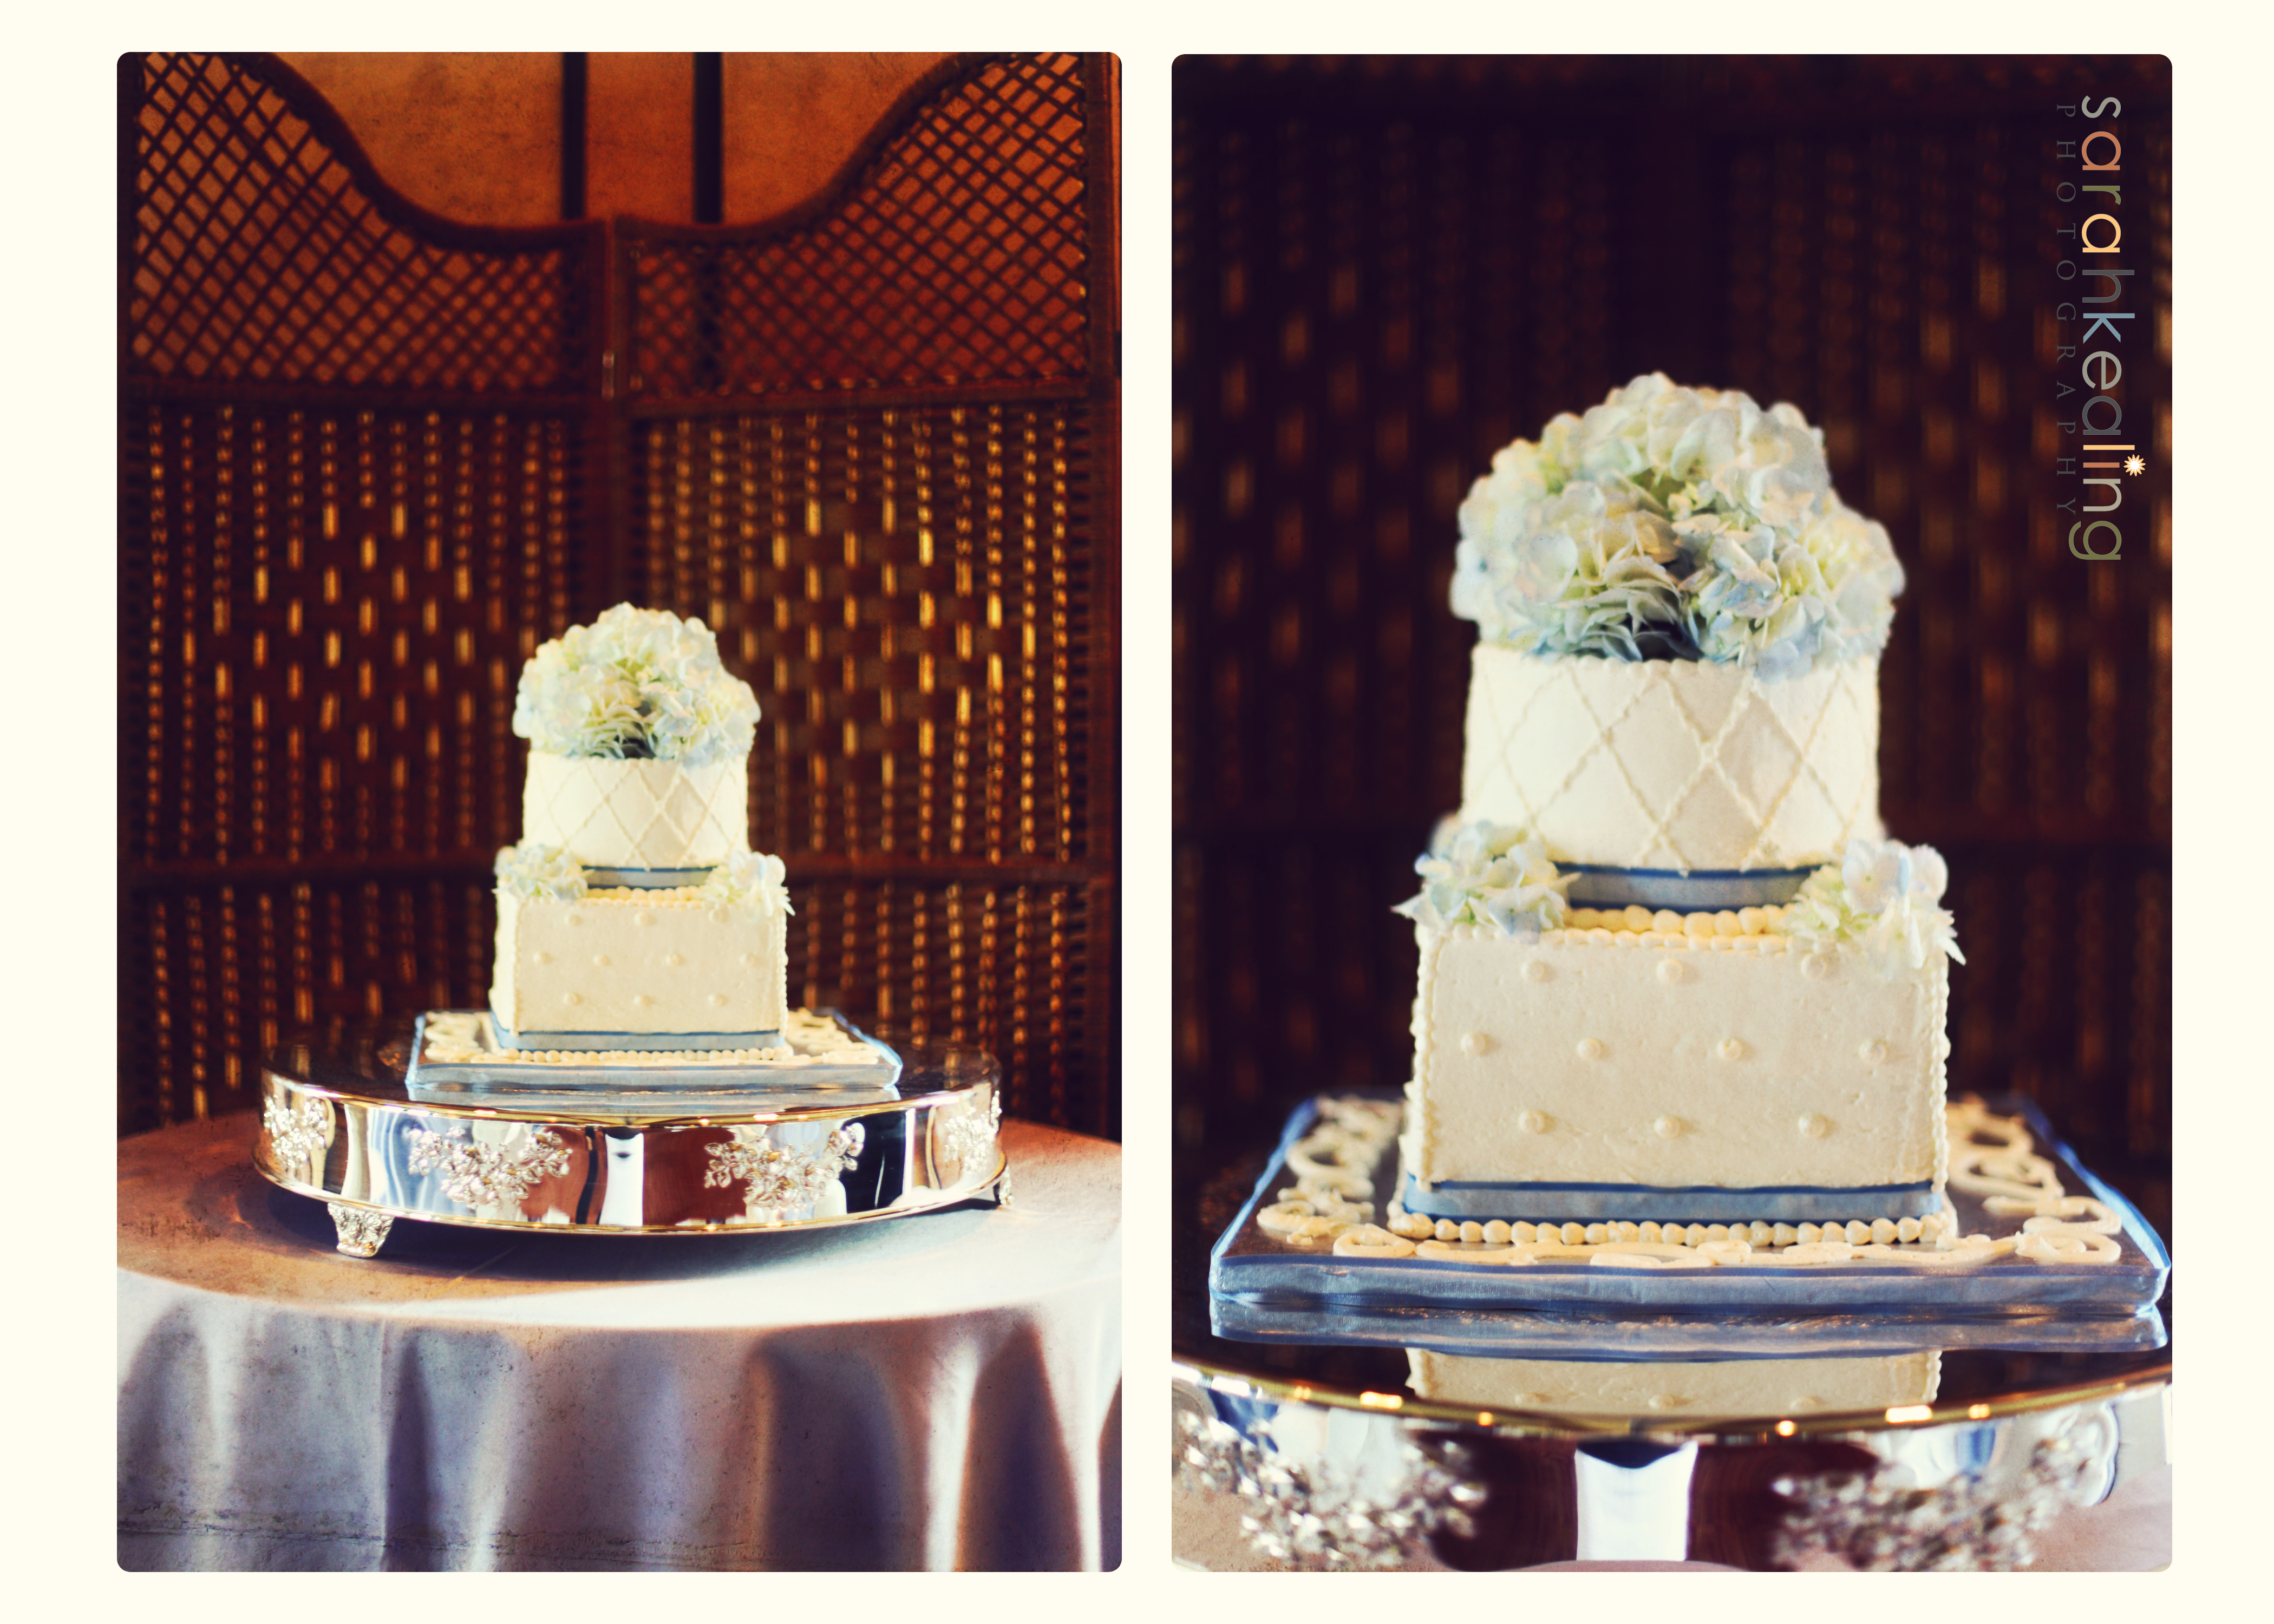 Cakes, white, purple, blue, cake, Sarah kealing photography